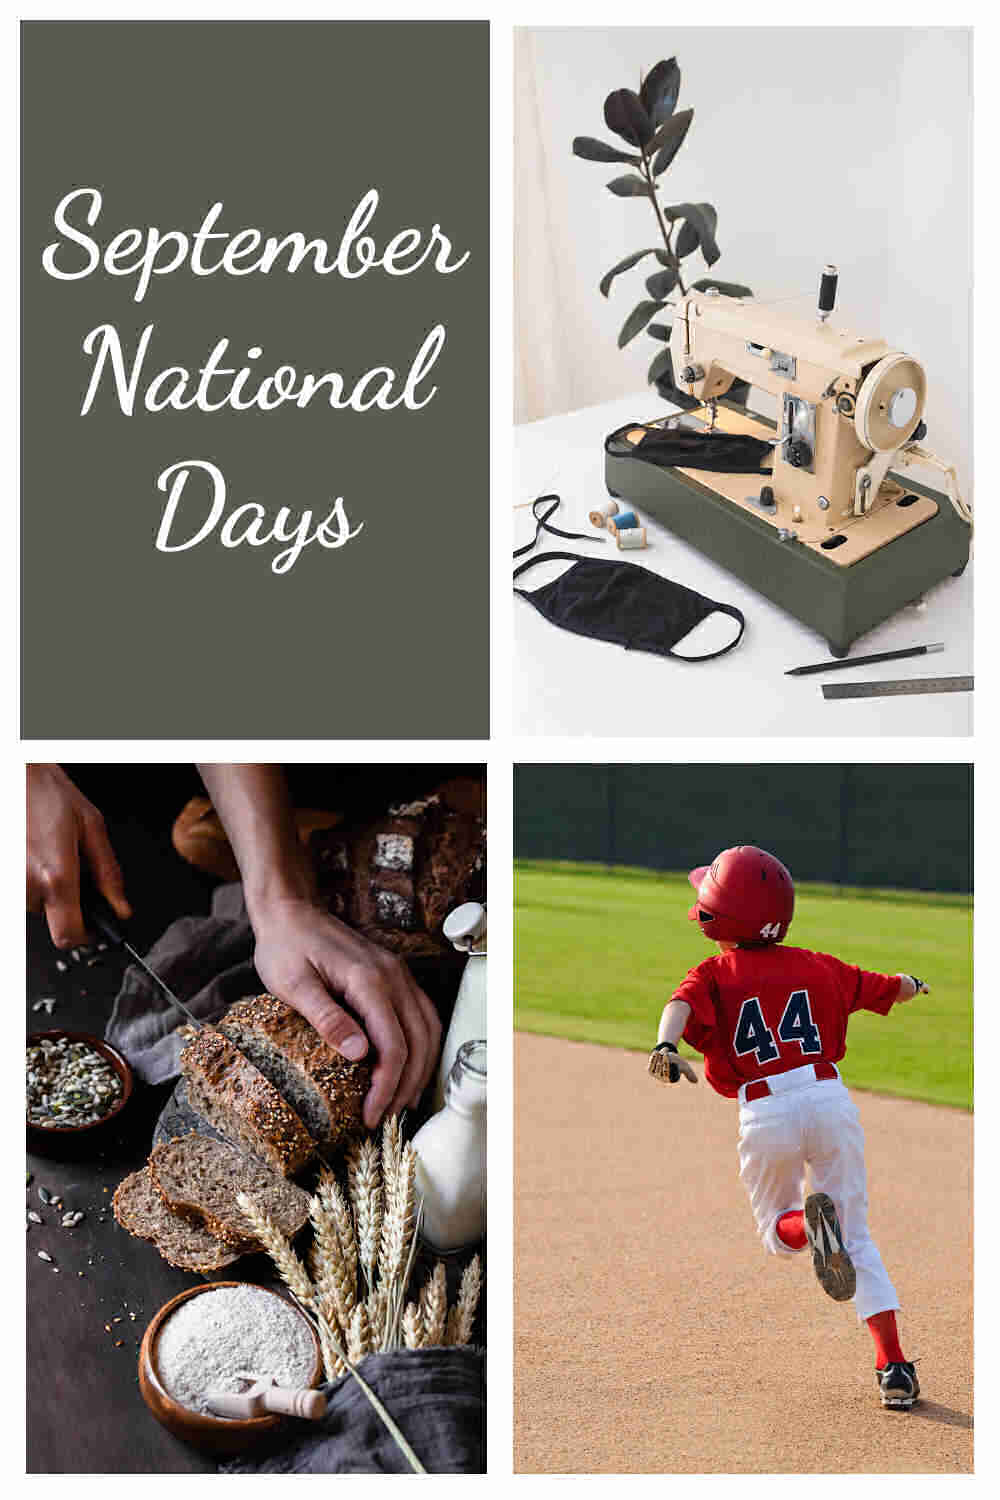 Sewing materials and machine, whole grains and boy playing little league with words September national days.